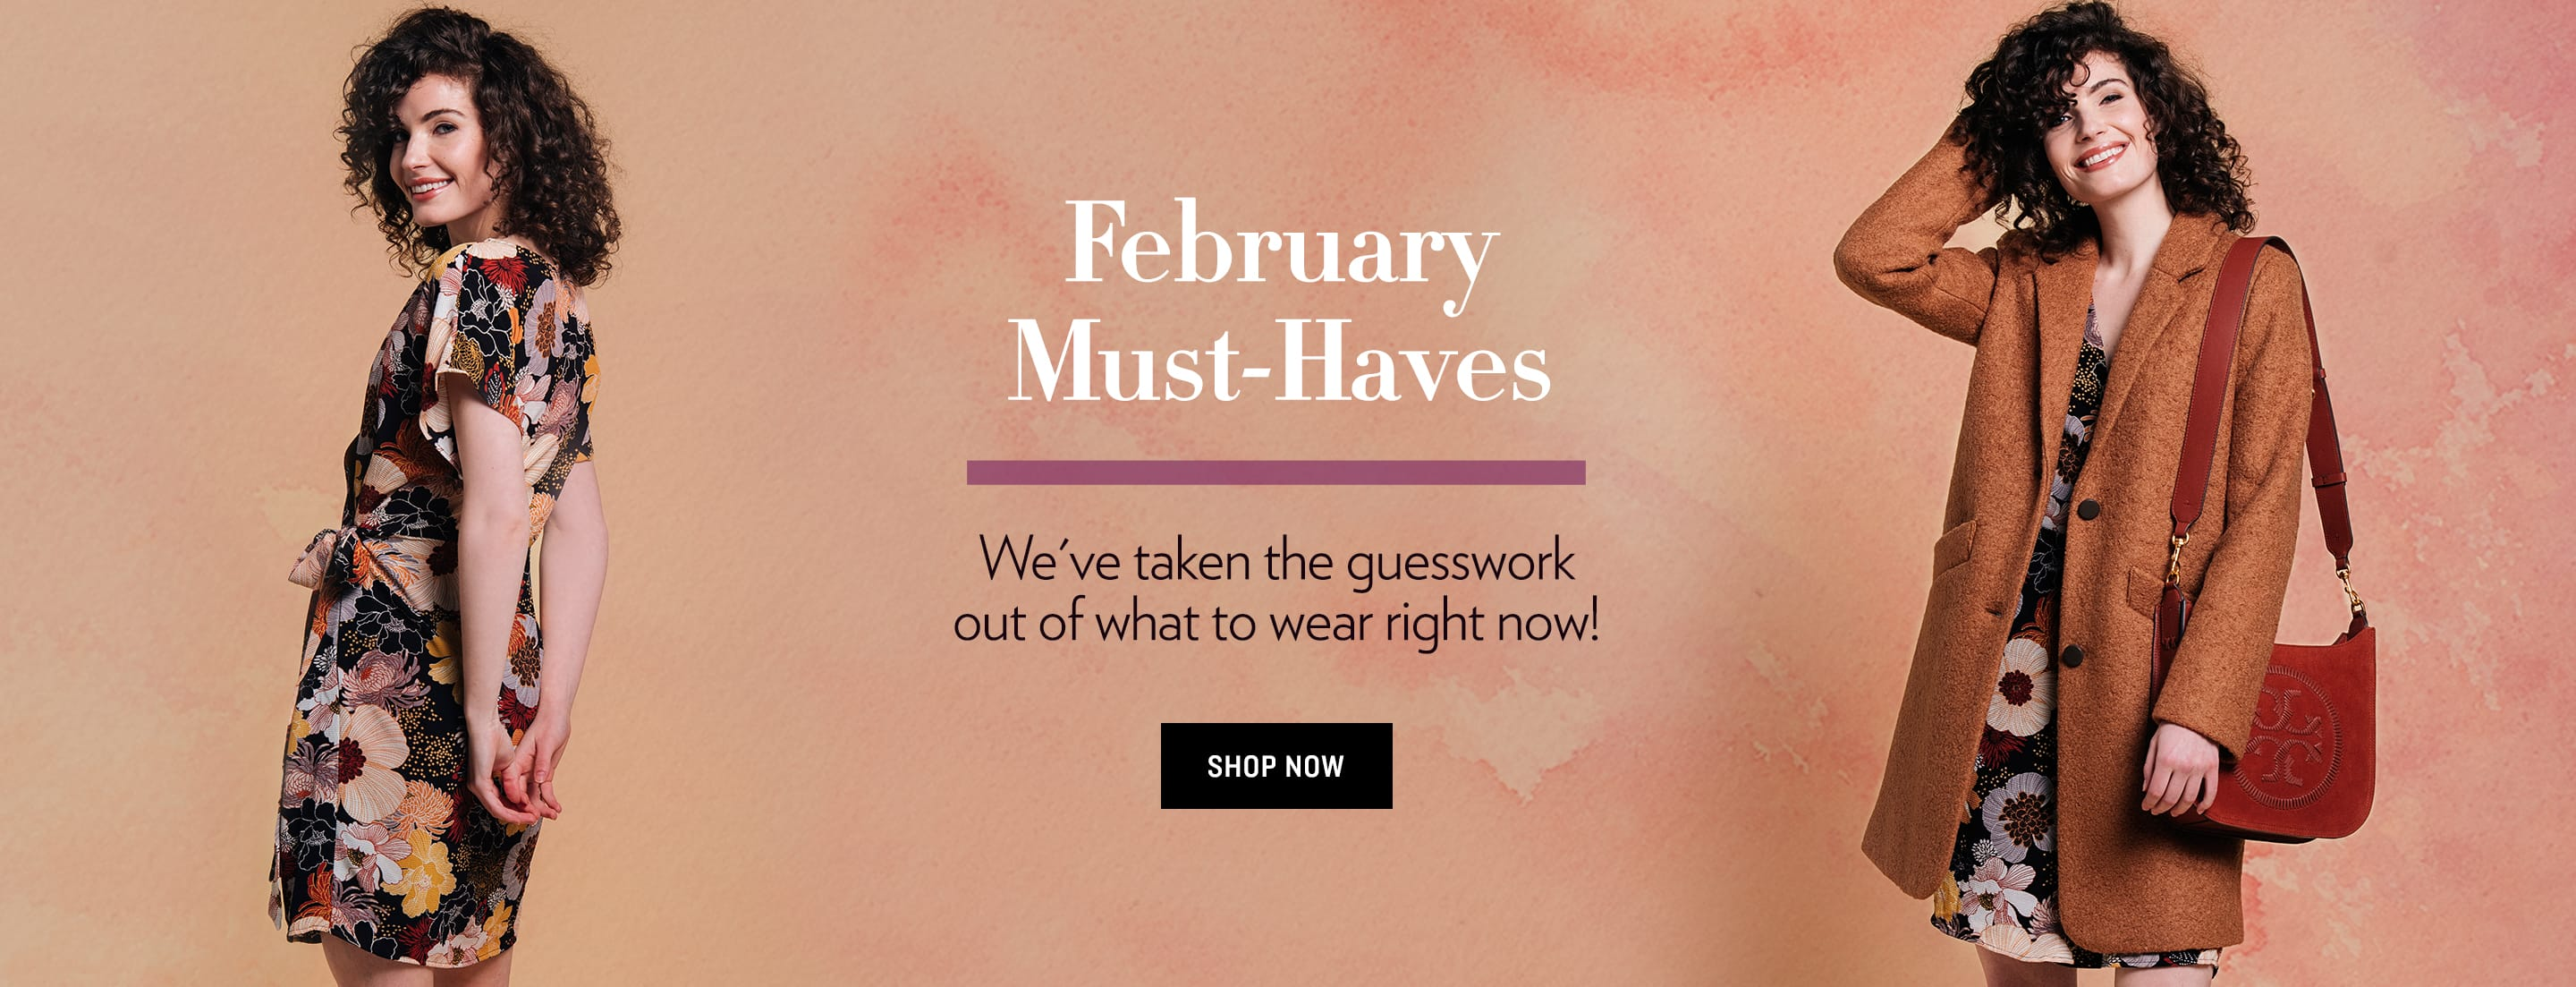 All February Must-Haves